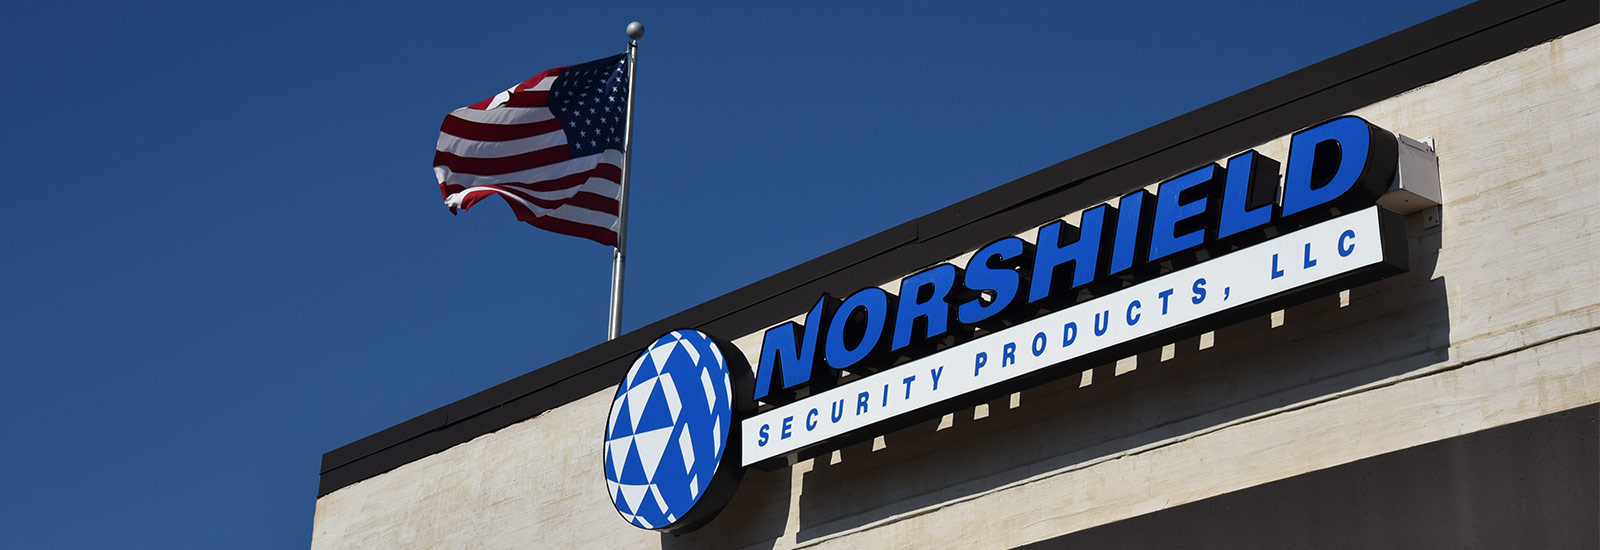 Image of Norshield HQ sign in Montgomery, Alabama